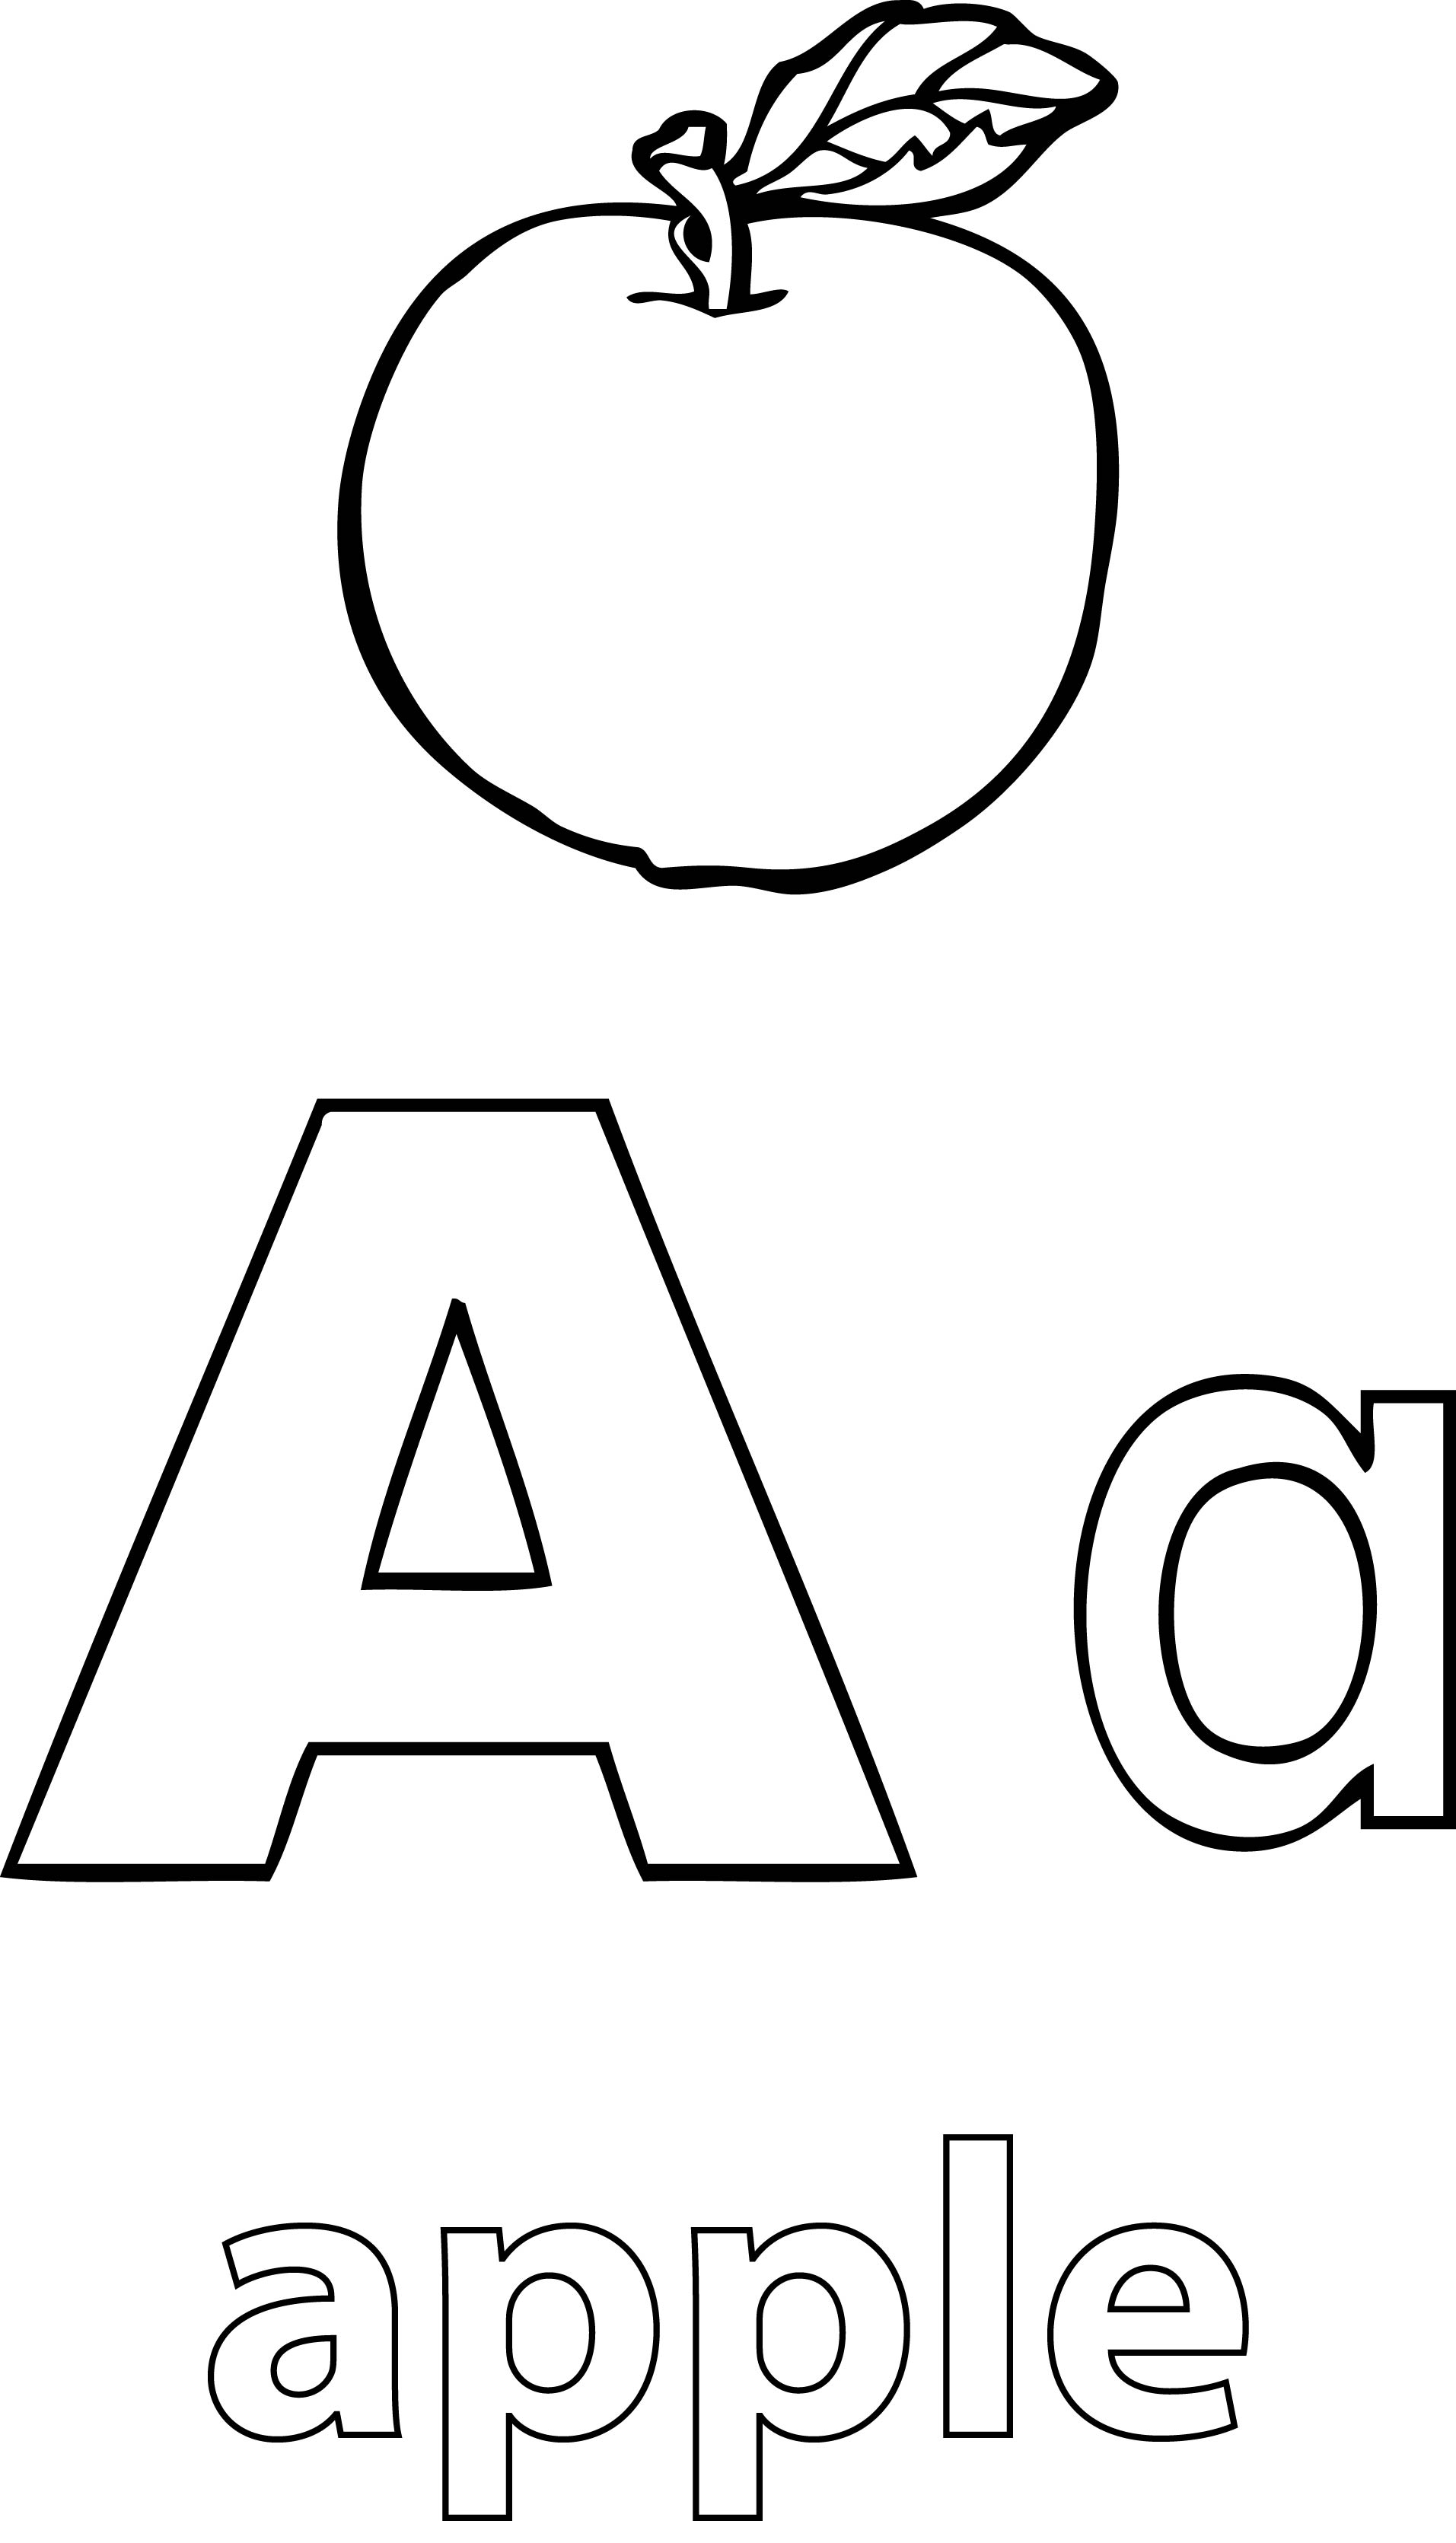 A alphabet apple coloring page for Apple coloring pages